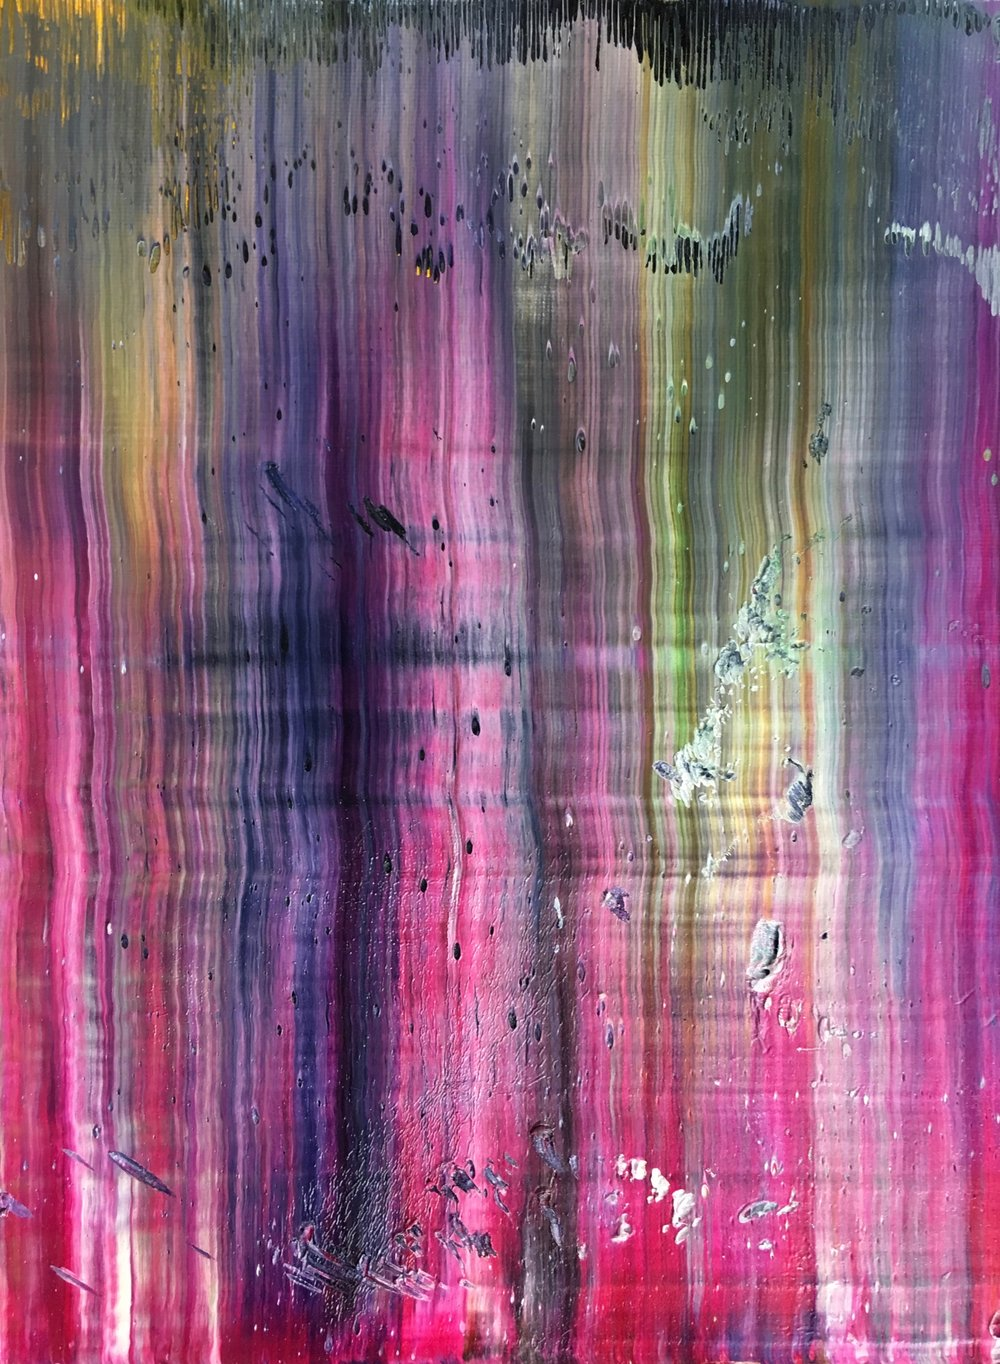 """Candy"" is an original, abstract oil painting created by Los Angeles based artist, Laura Viapiano."